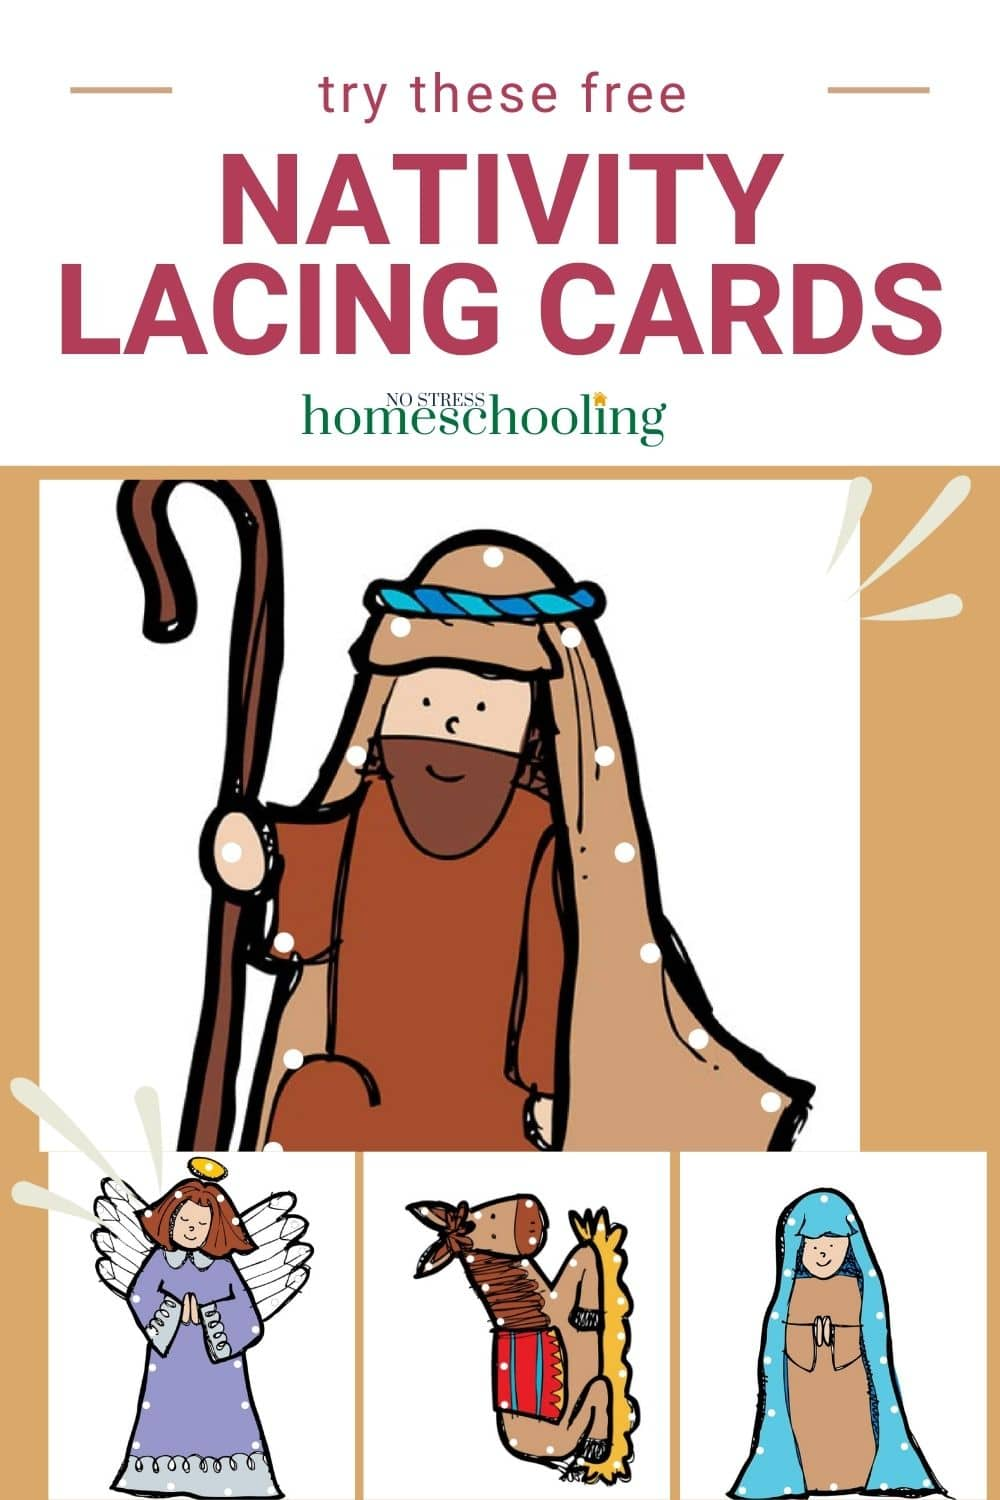 free nativity lacing cards